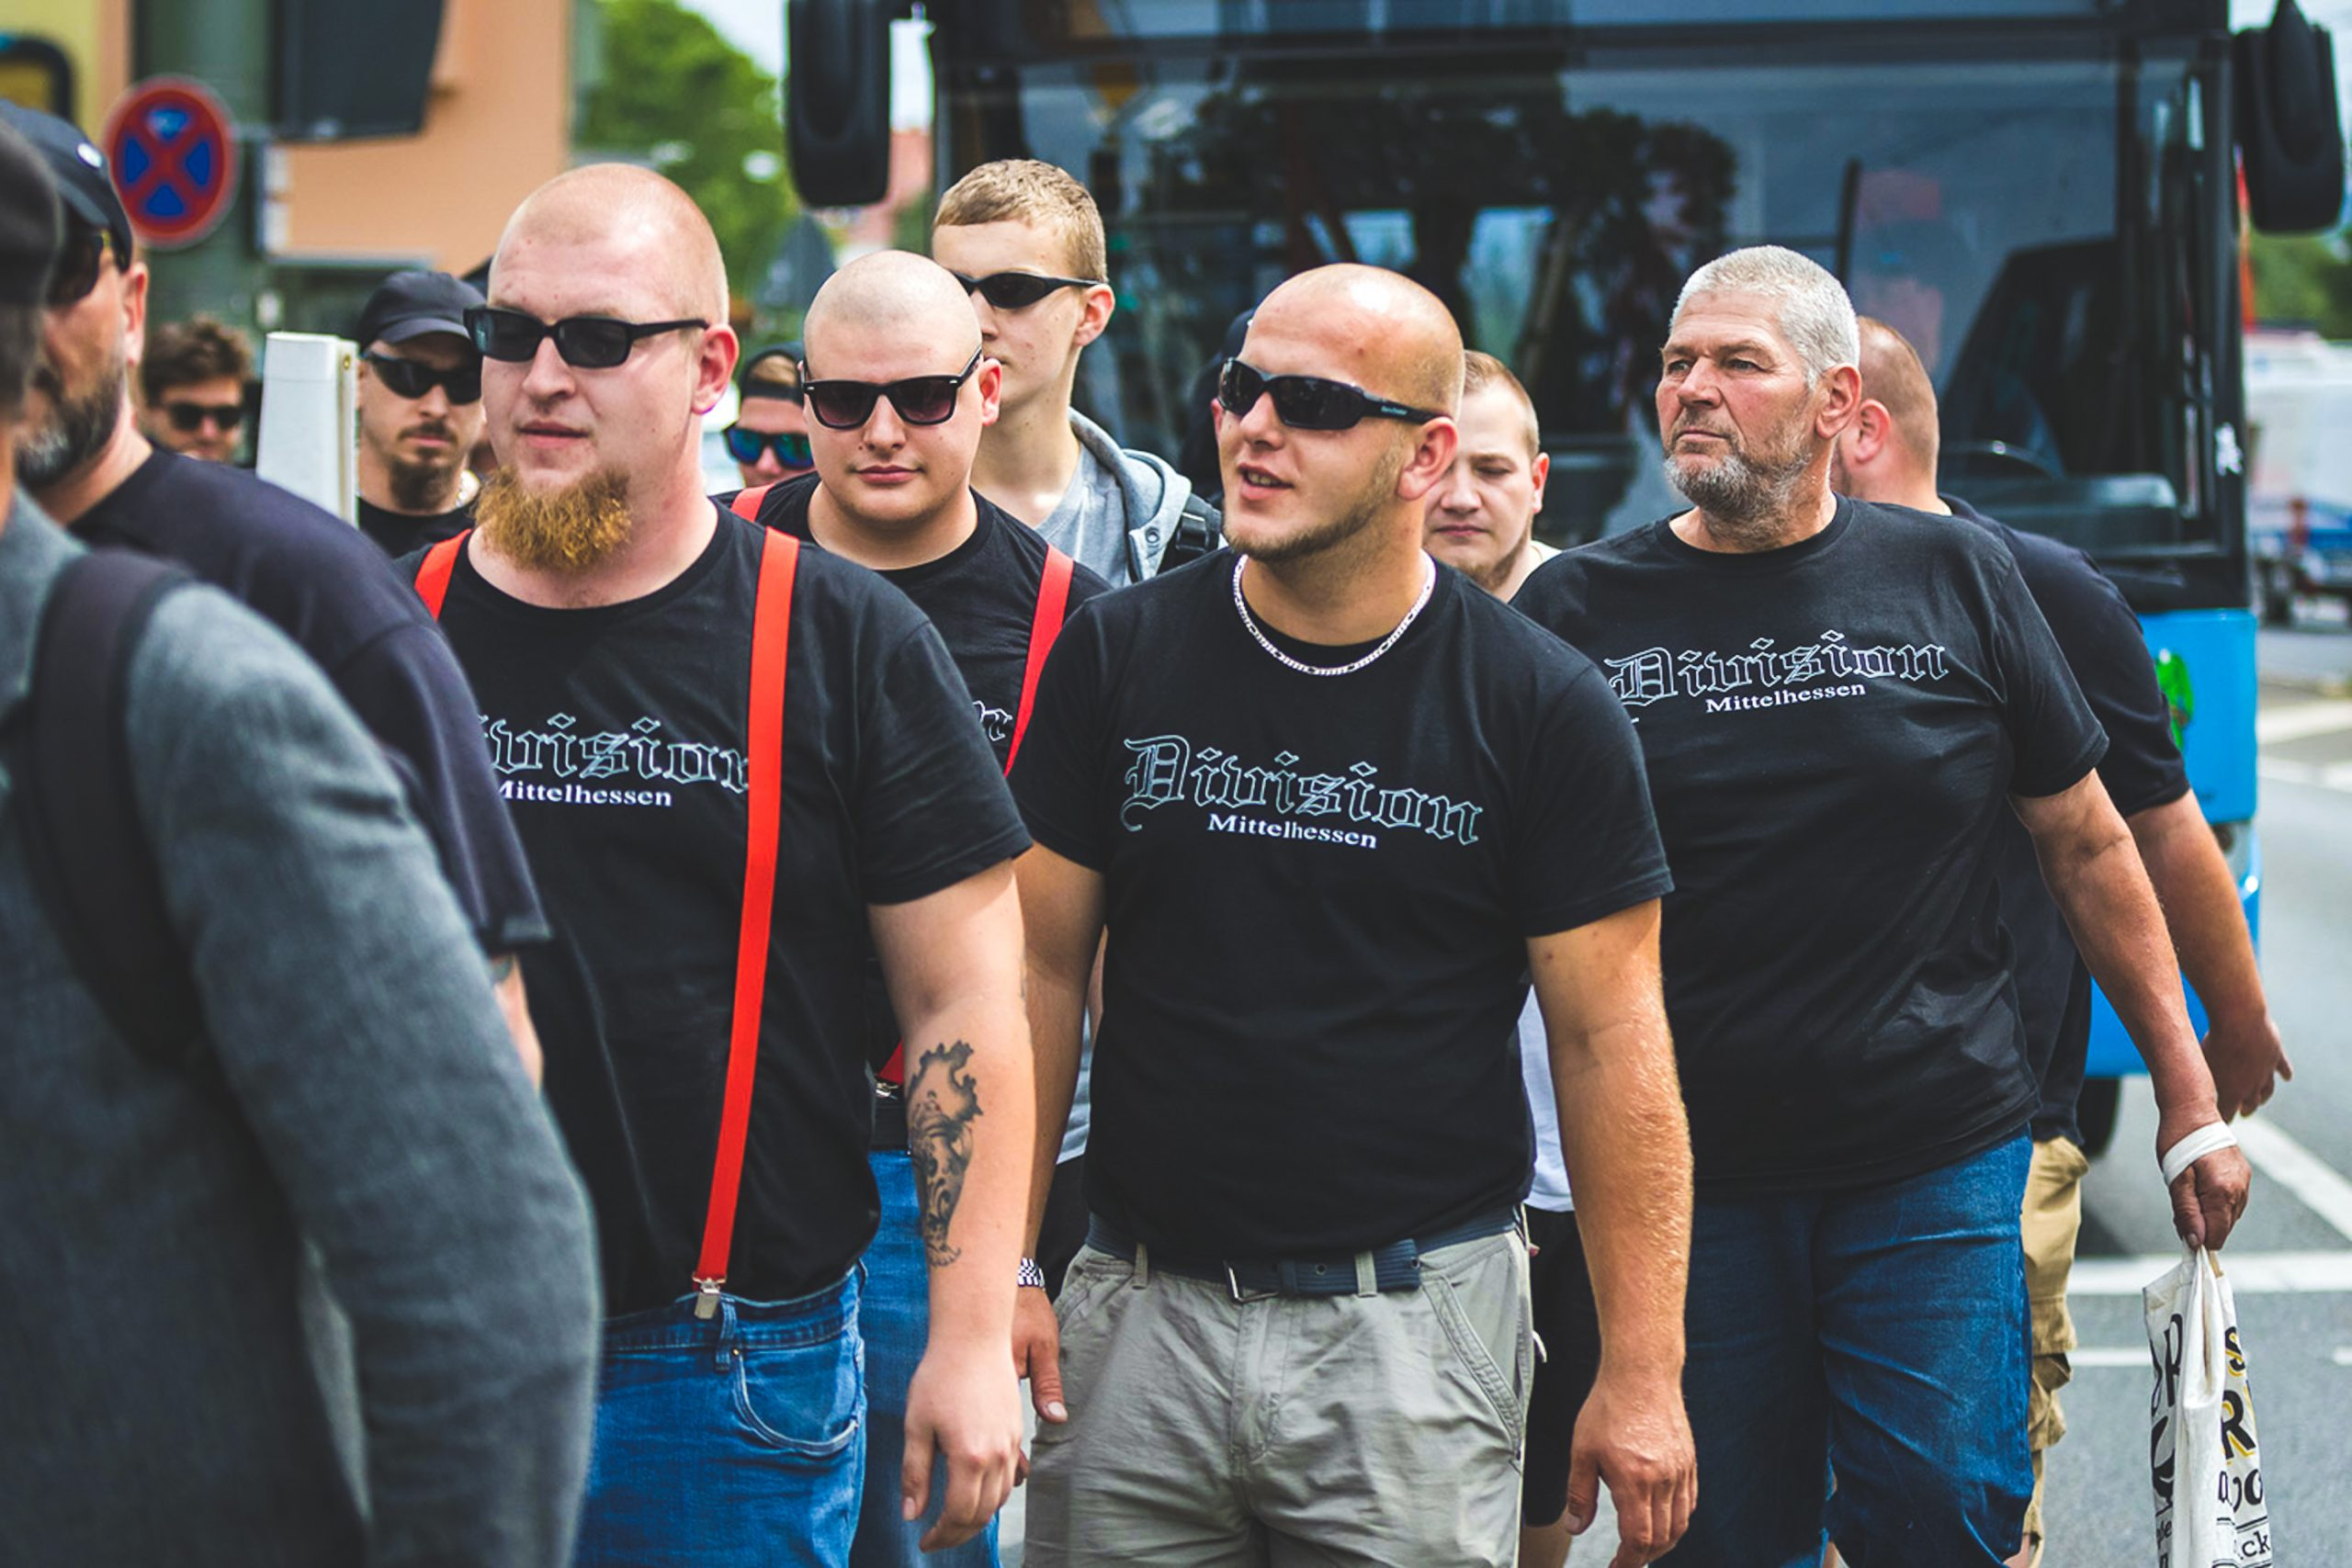 Atomwaffen Division Nazis, Kassel. Germany, July 2019.